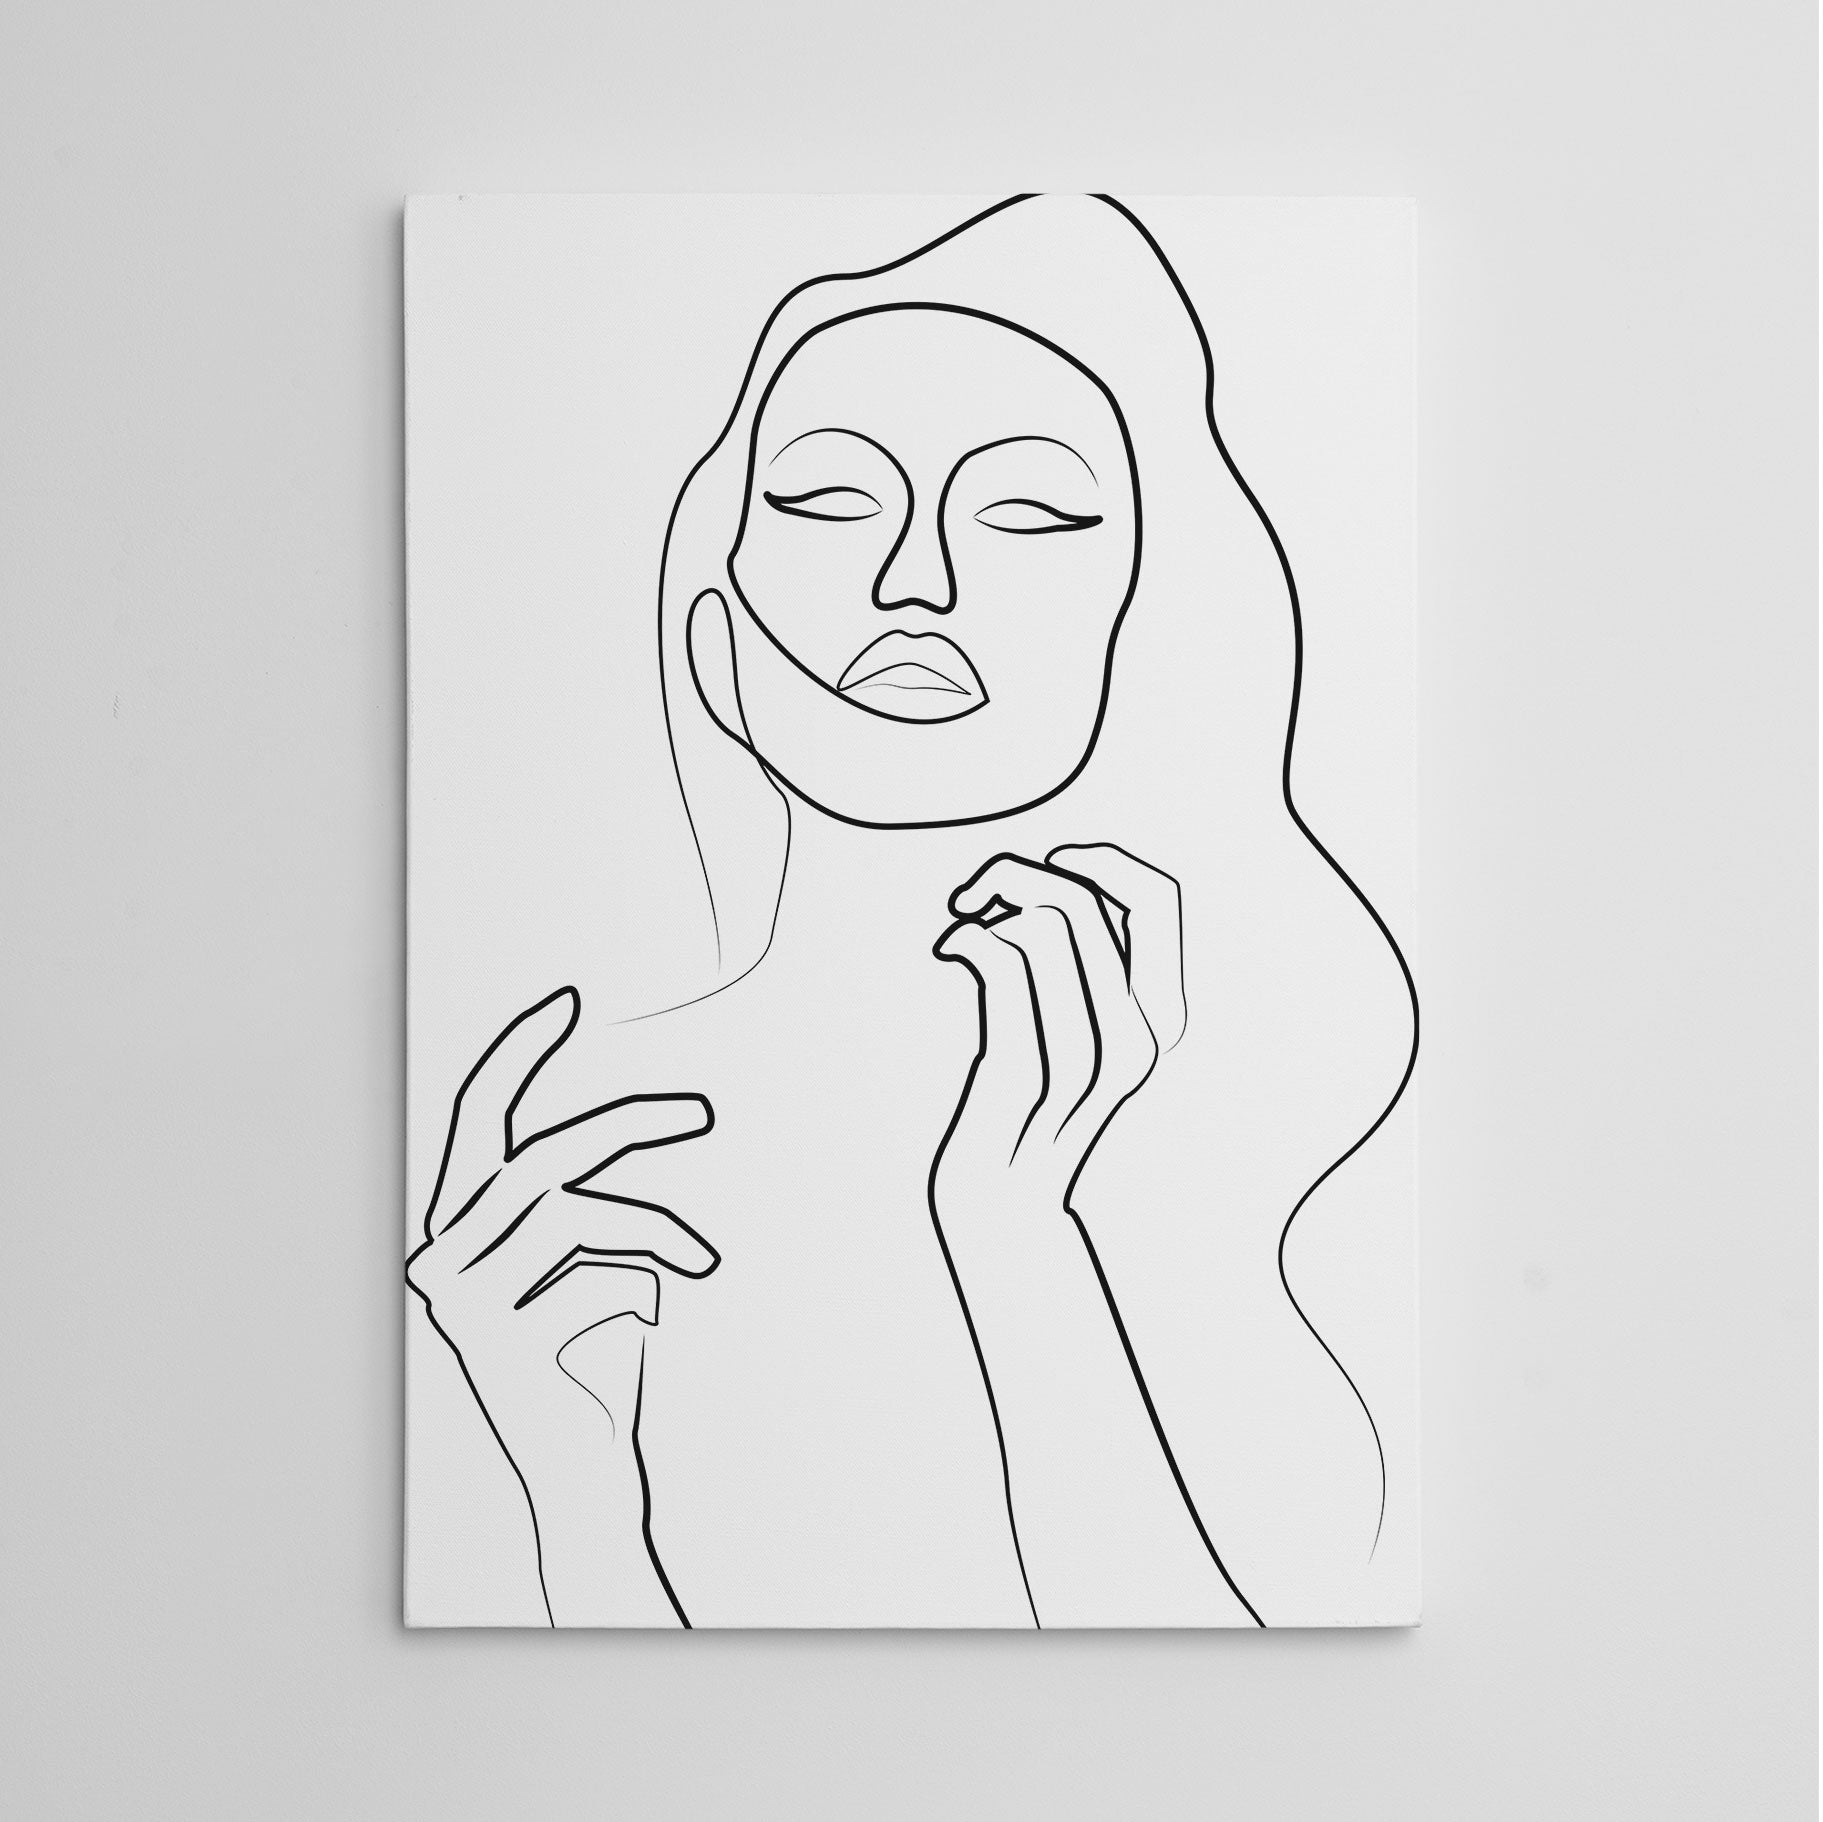 Beautiful line art canvas print with a sensual woman with long wavy hair